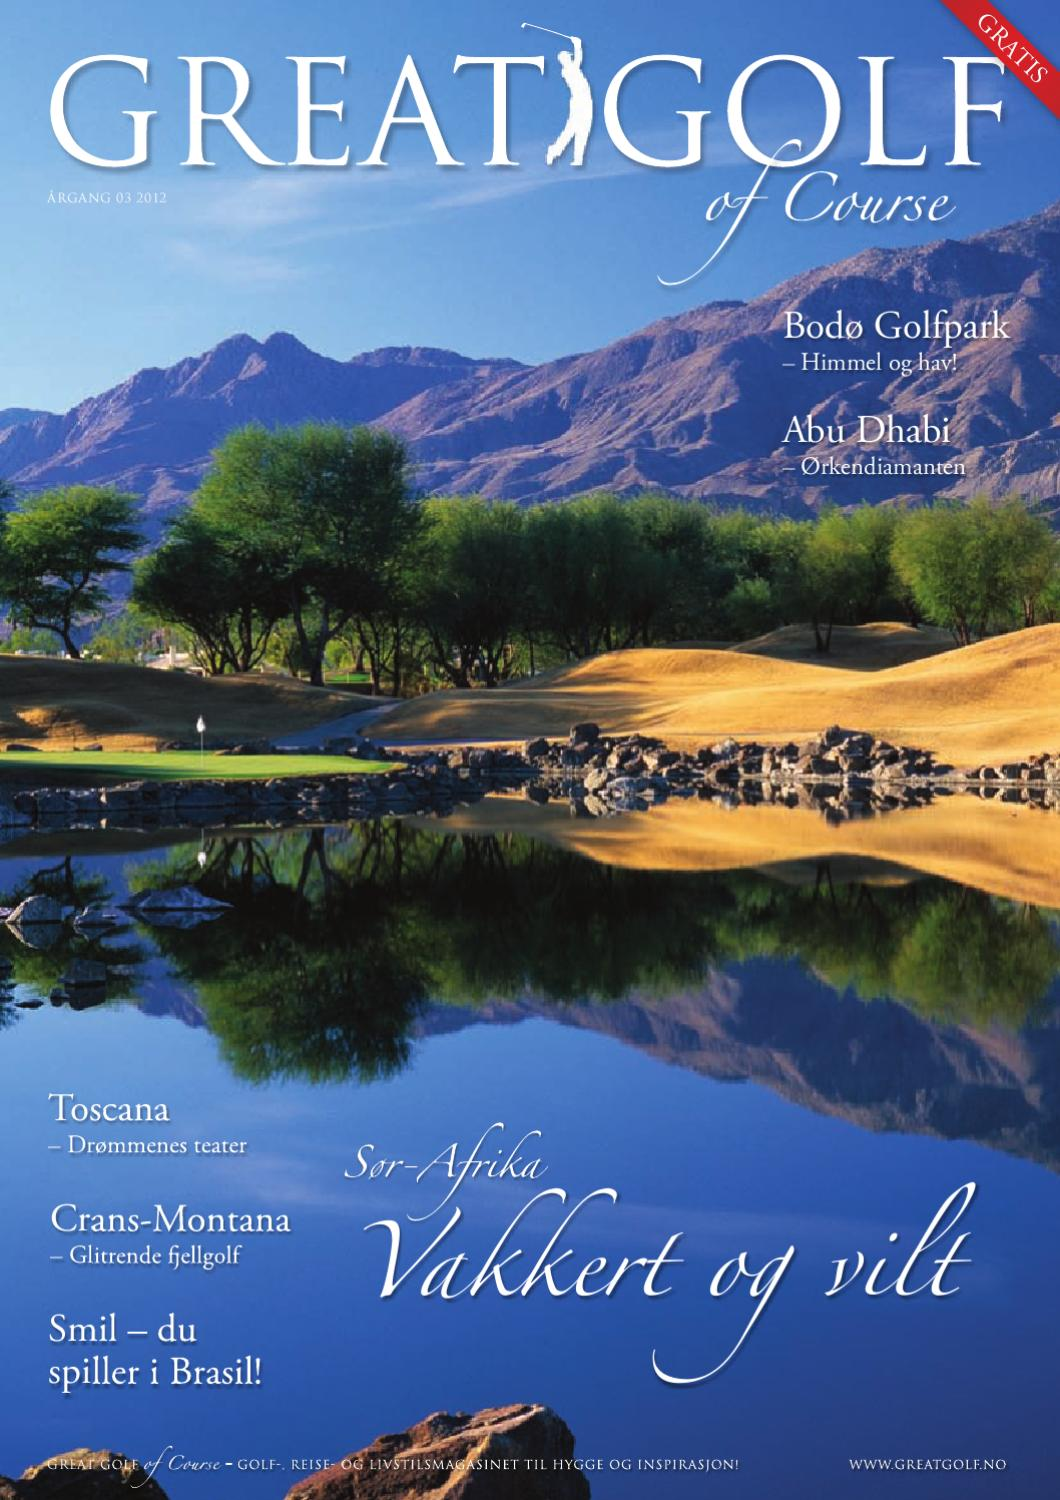 great golf of course 2012 by anette bjerve issuu